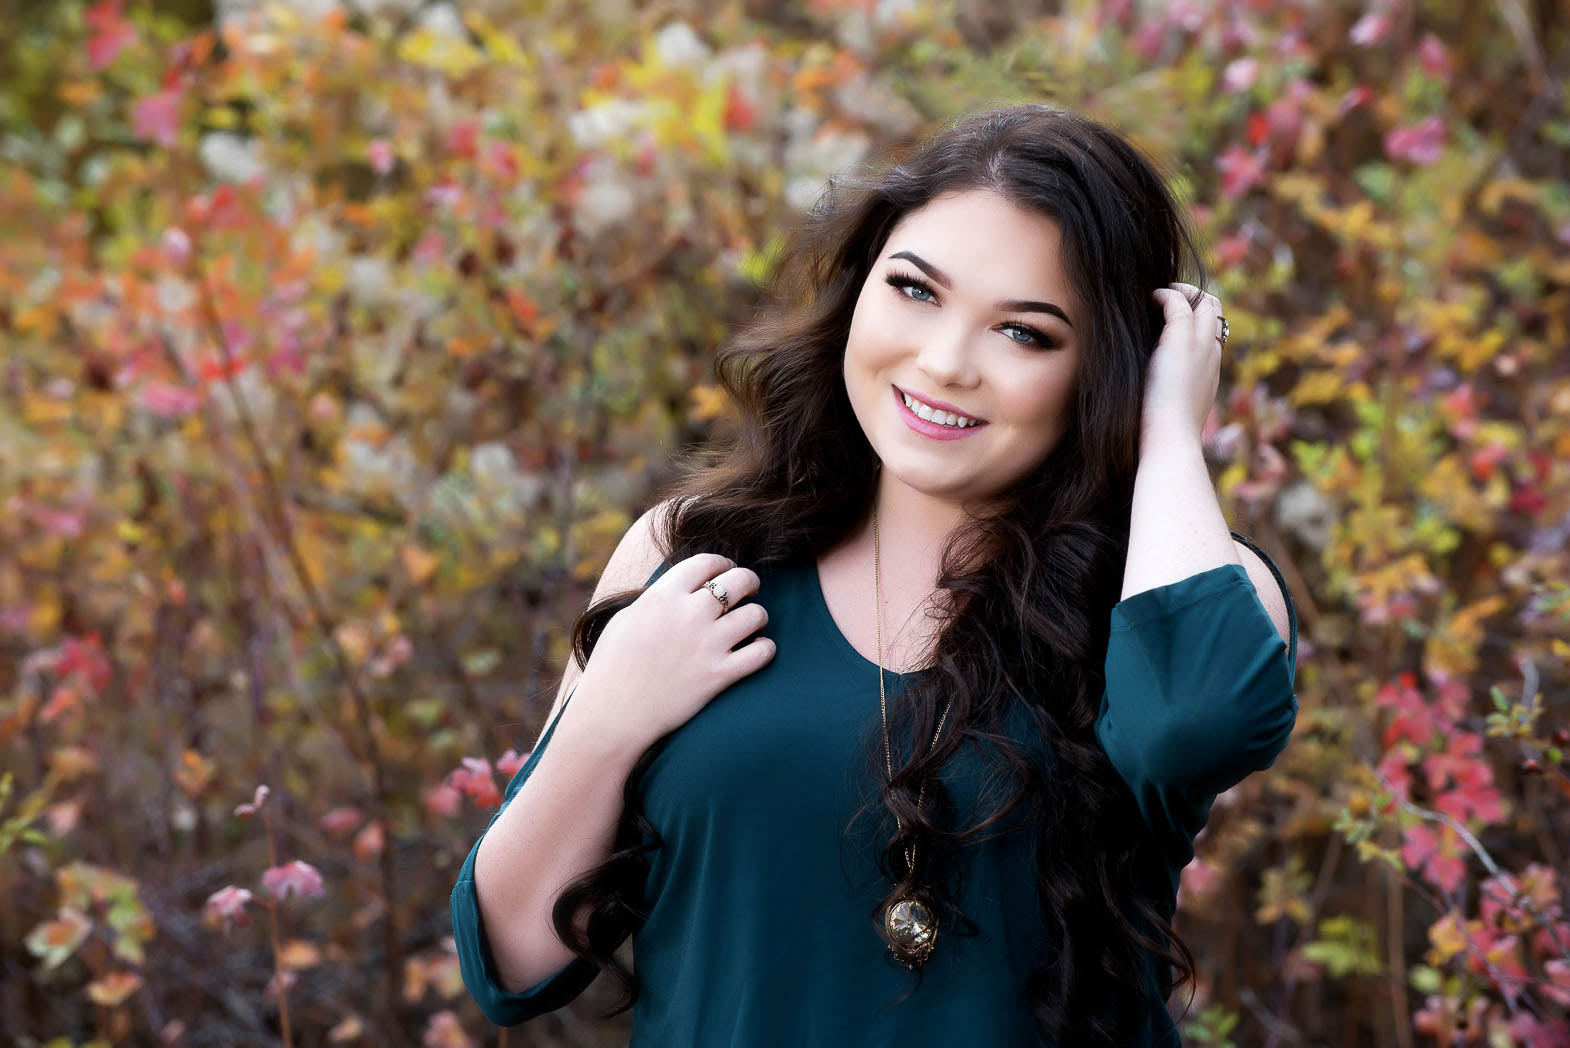 senior portrait of girl with hand in hair smiling with fall colored leaves behind her